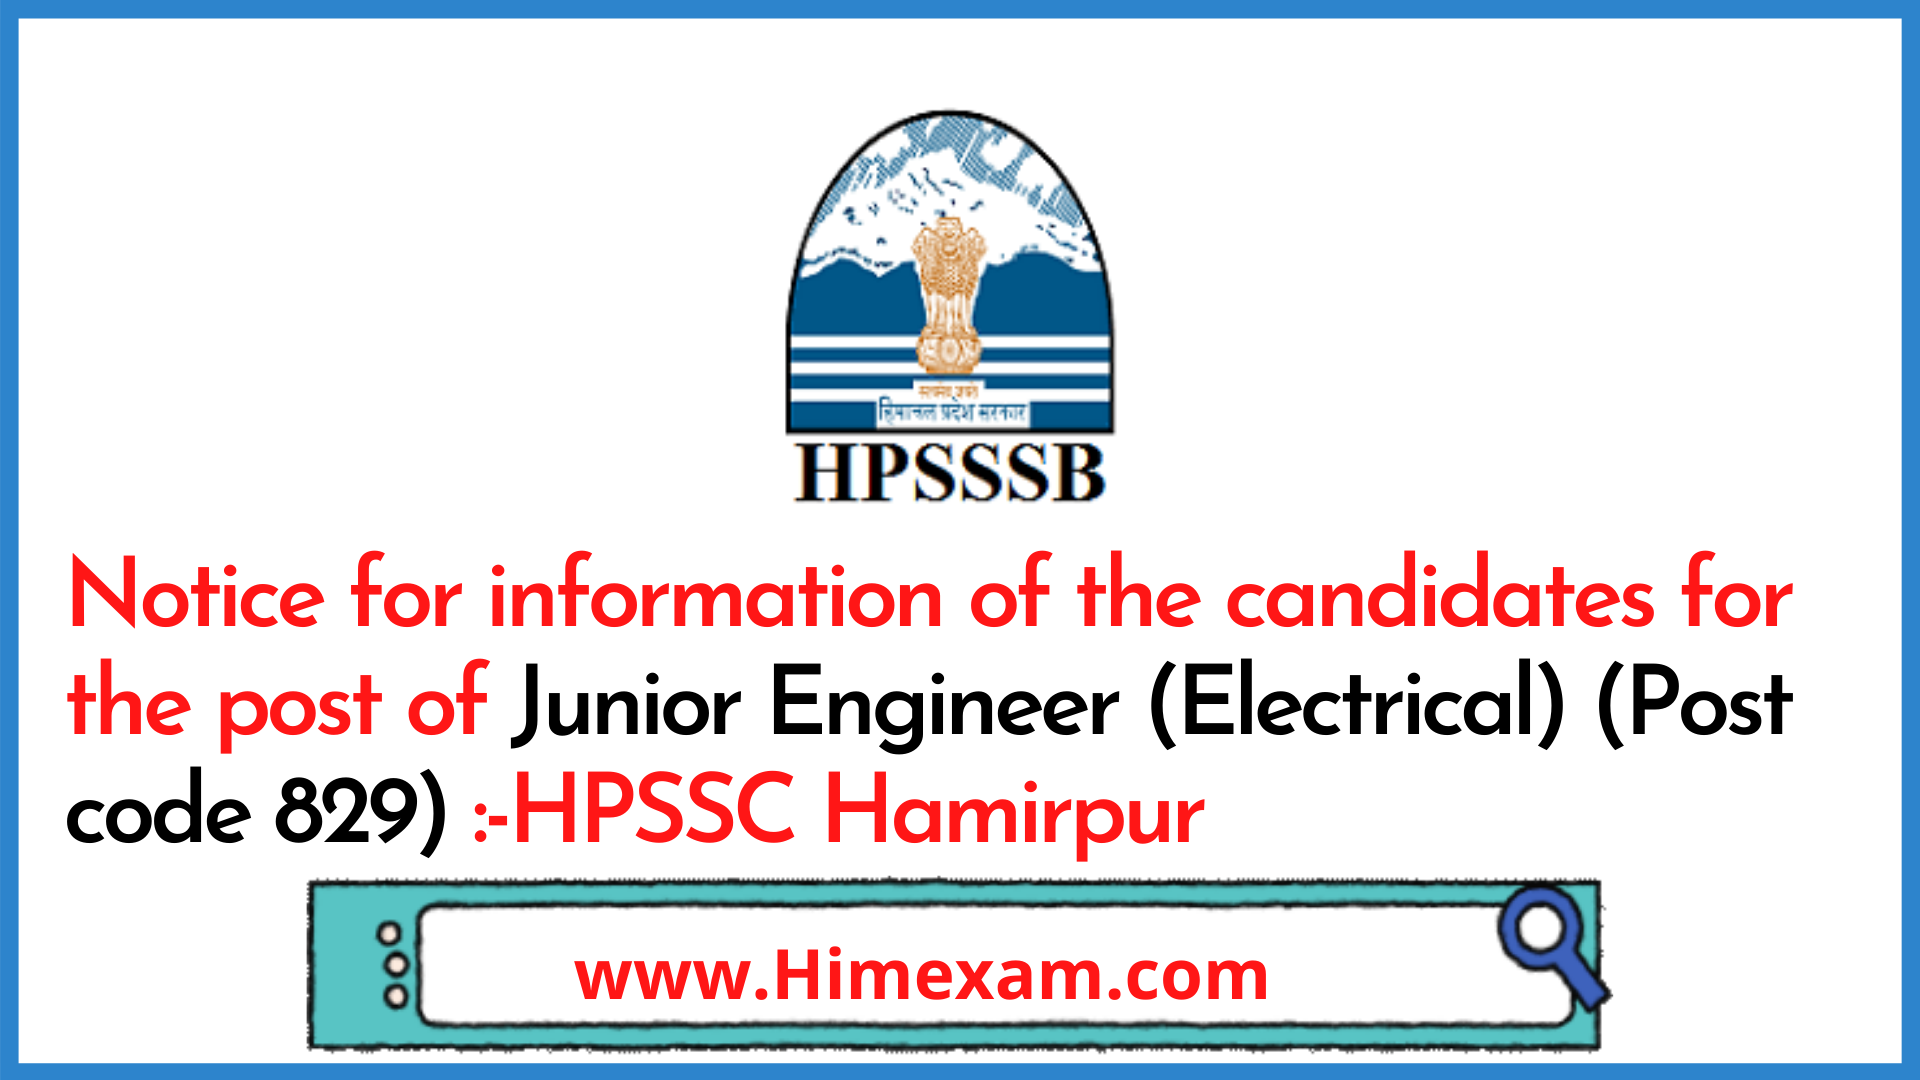 Notice for information of the candidates for the post of Junior Engineer (Electrical) (Post code 829) :-HPSSC Hamirpur